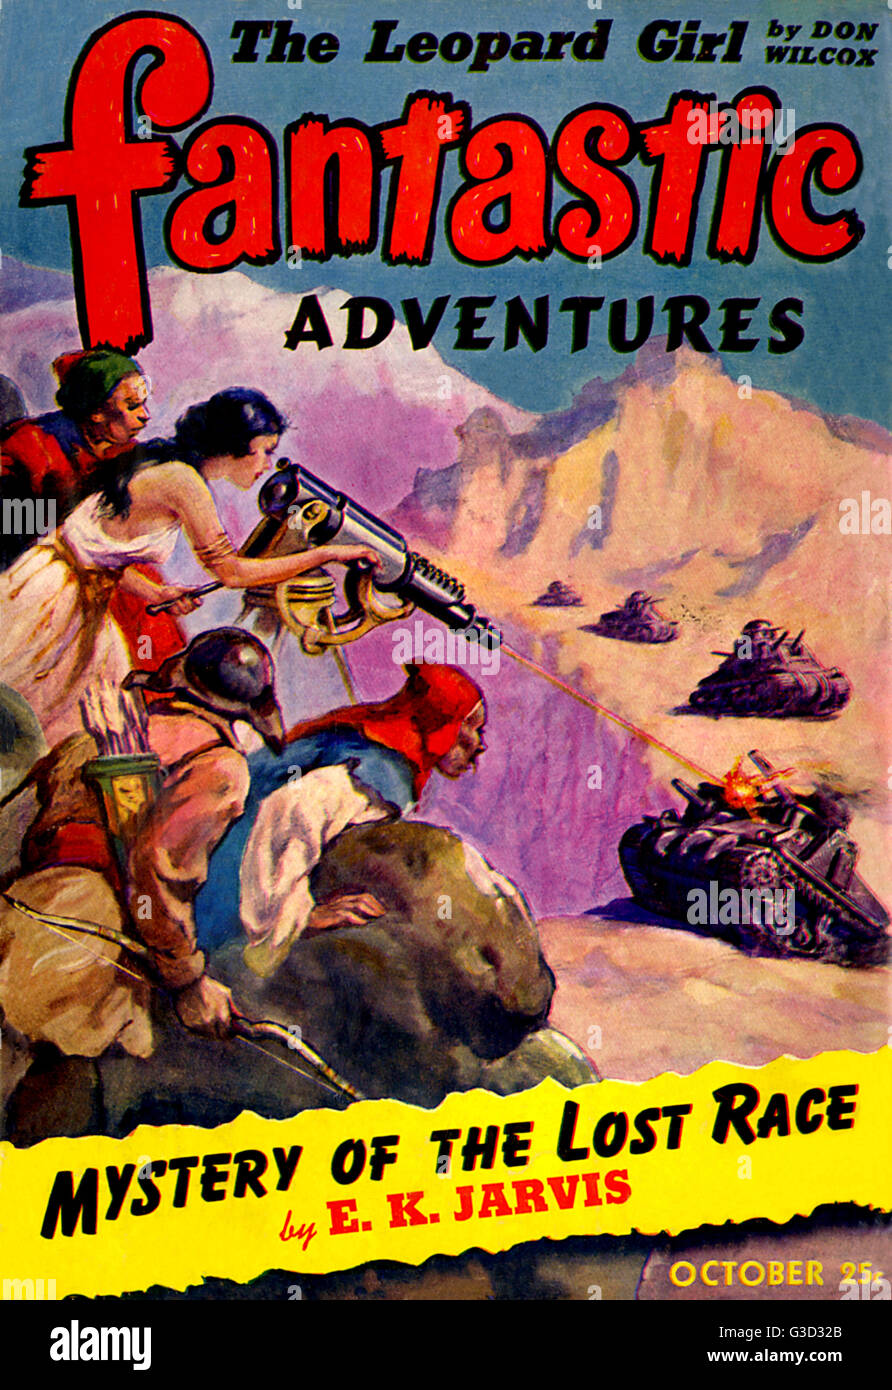 Cover of Fantastic Adventures, October 1942, featuring the story 'Mystery of the lost race' by E. K. Jarvis. - Stock Image